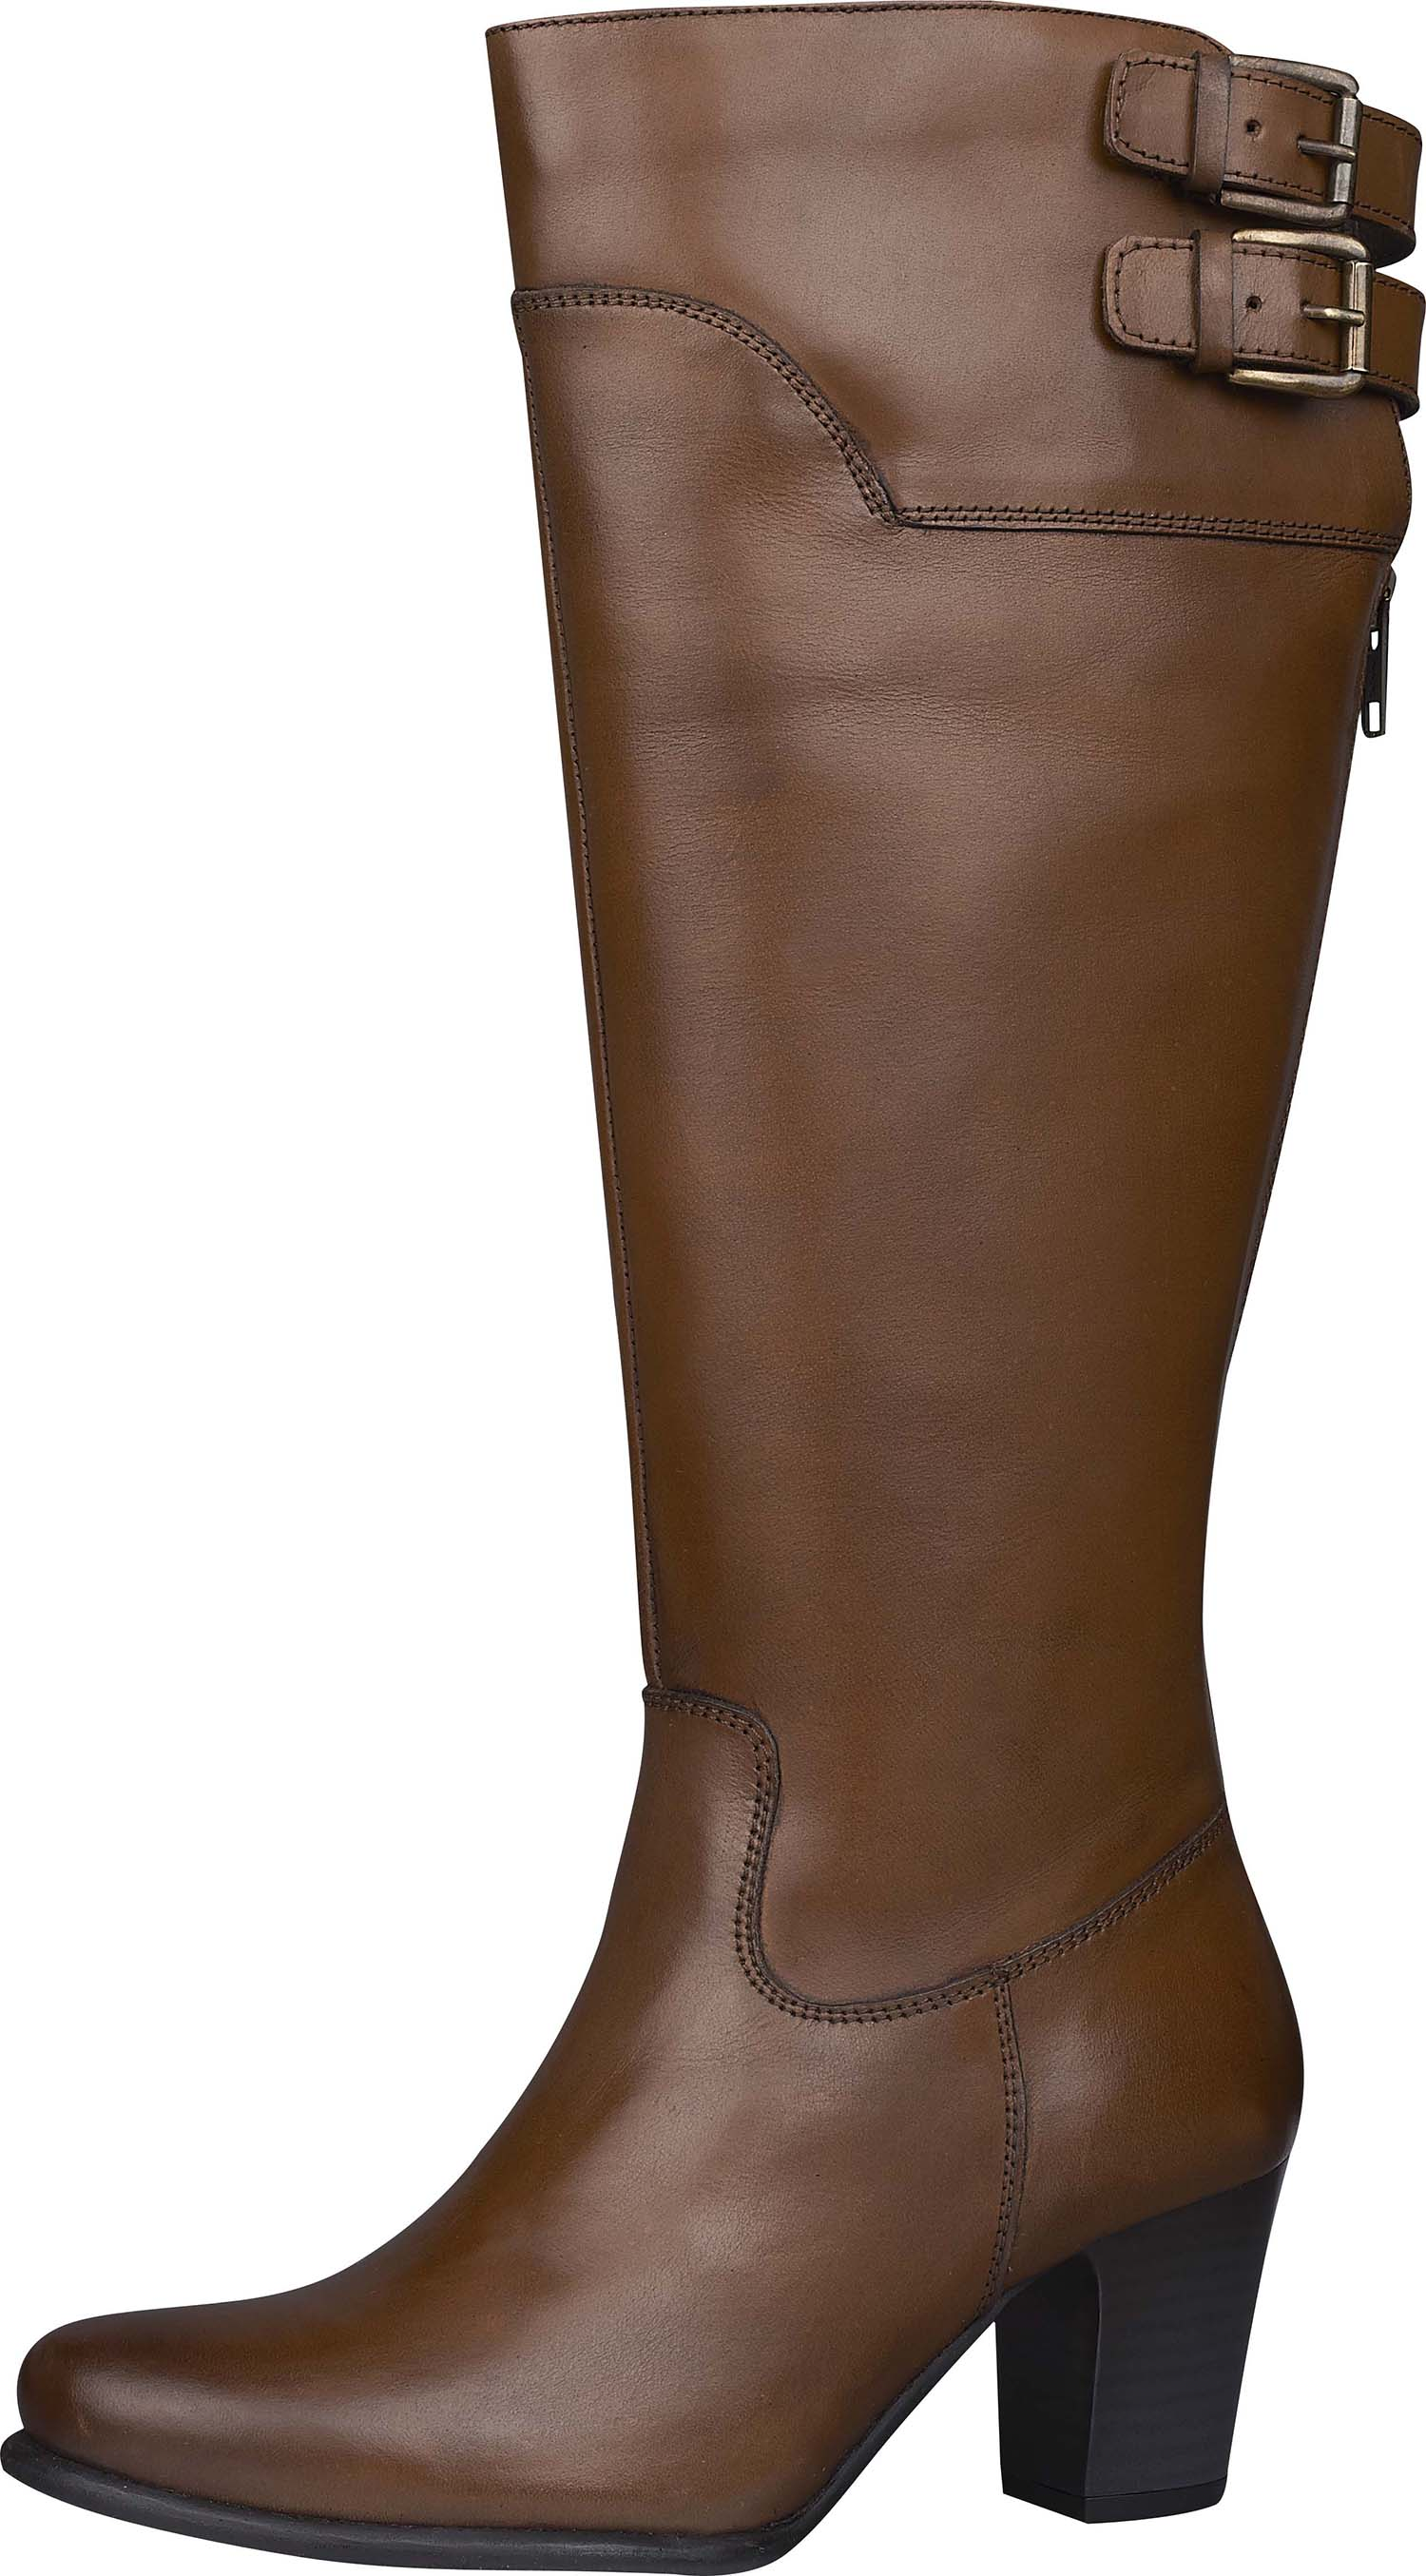 Brown Knee Length Boots by Hush Puppies